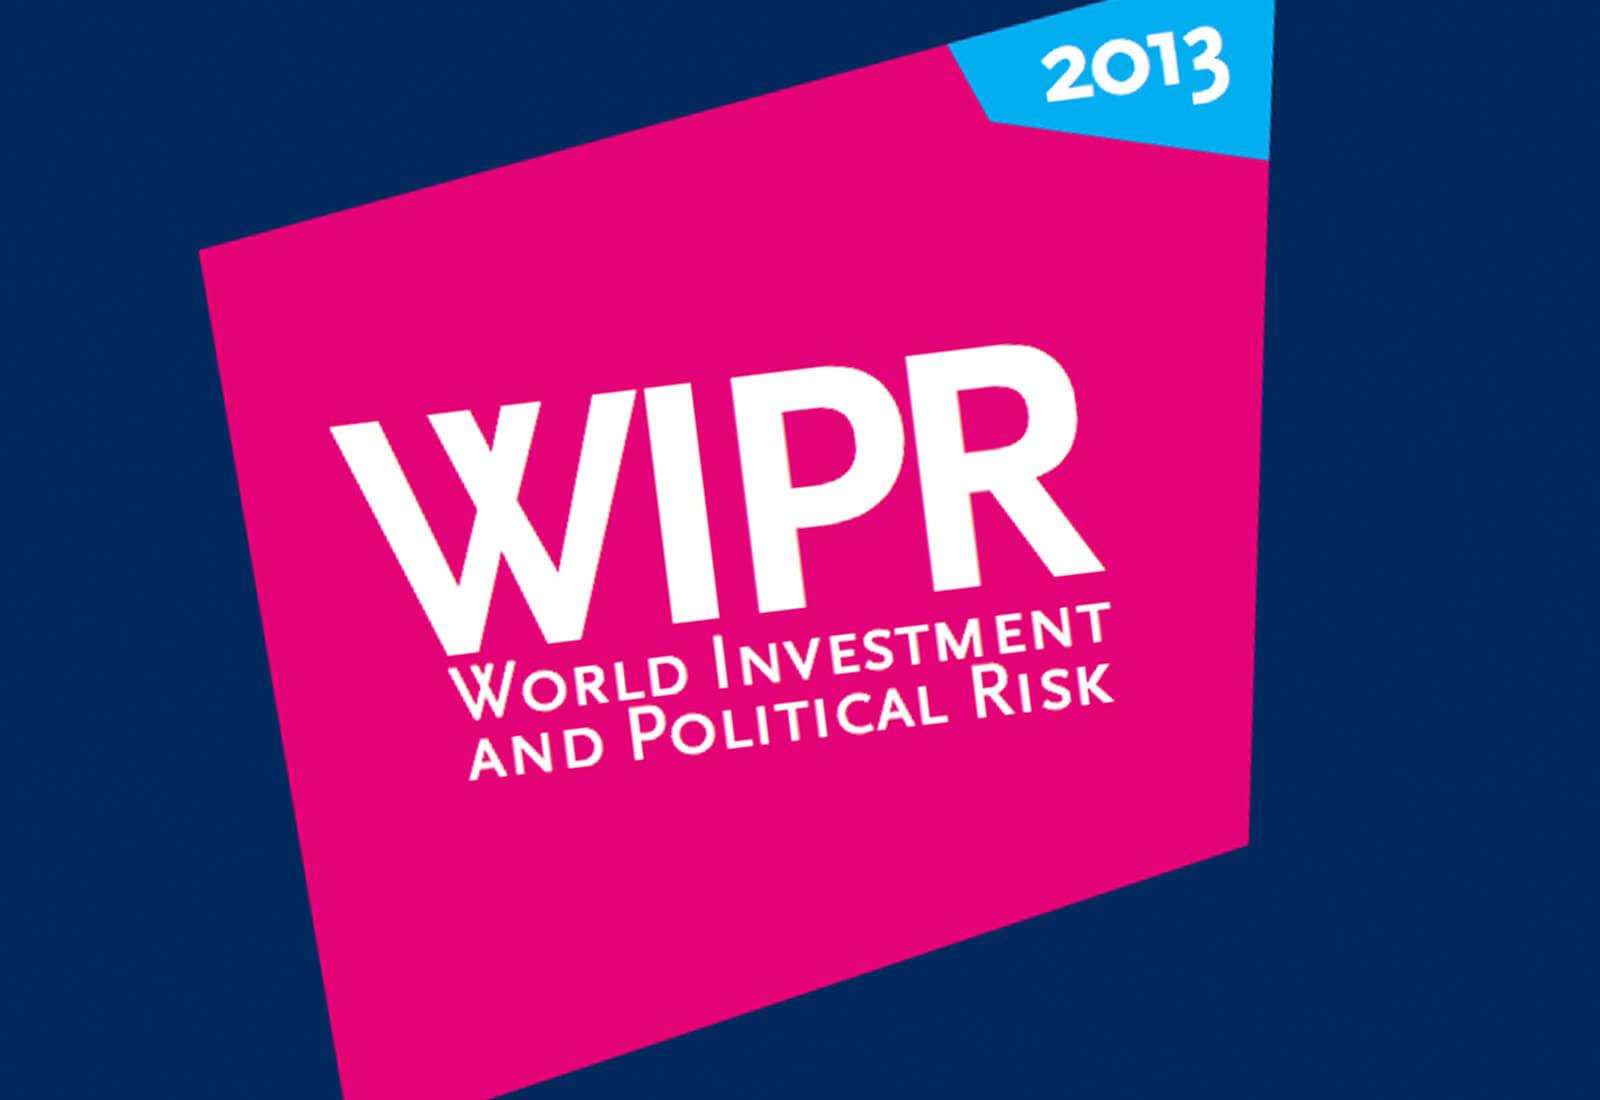 World Investment and Political Risk 2013